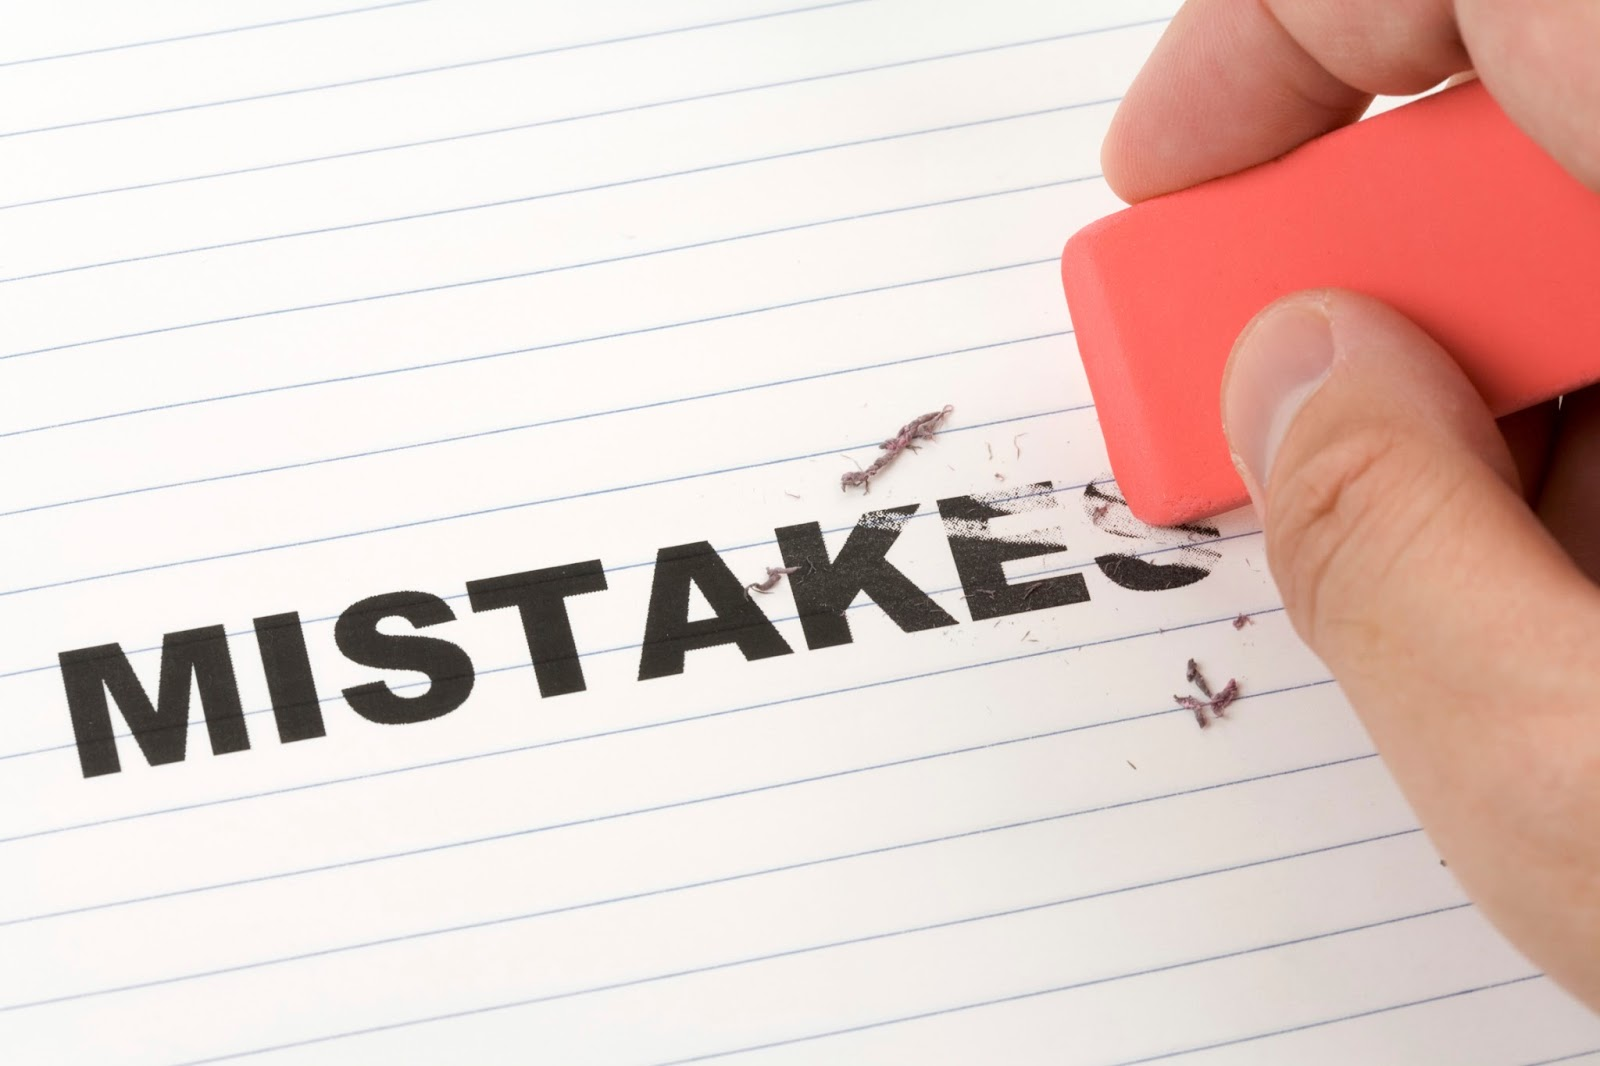 Top 5 Mistakes to Avoid in Website Design